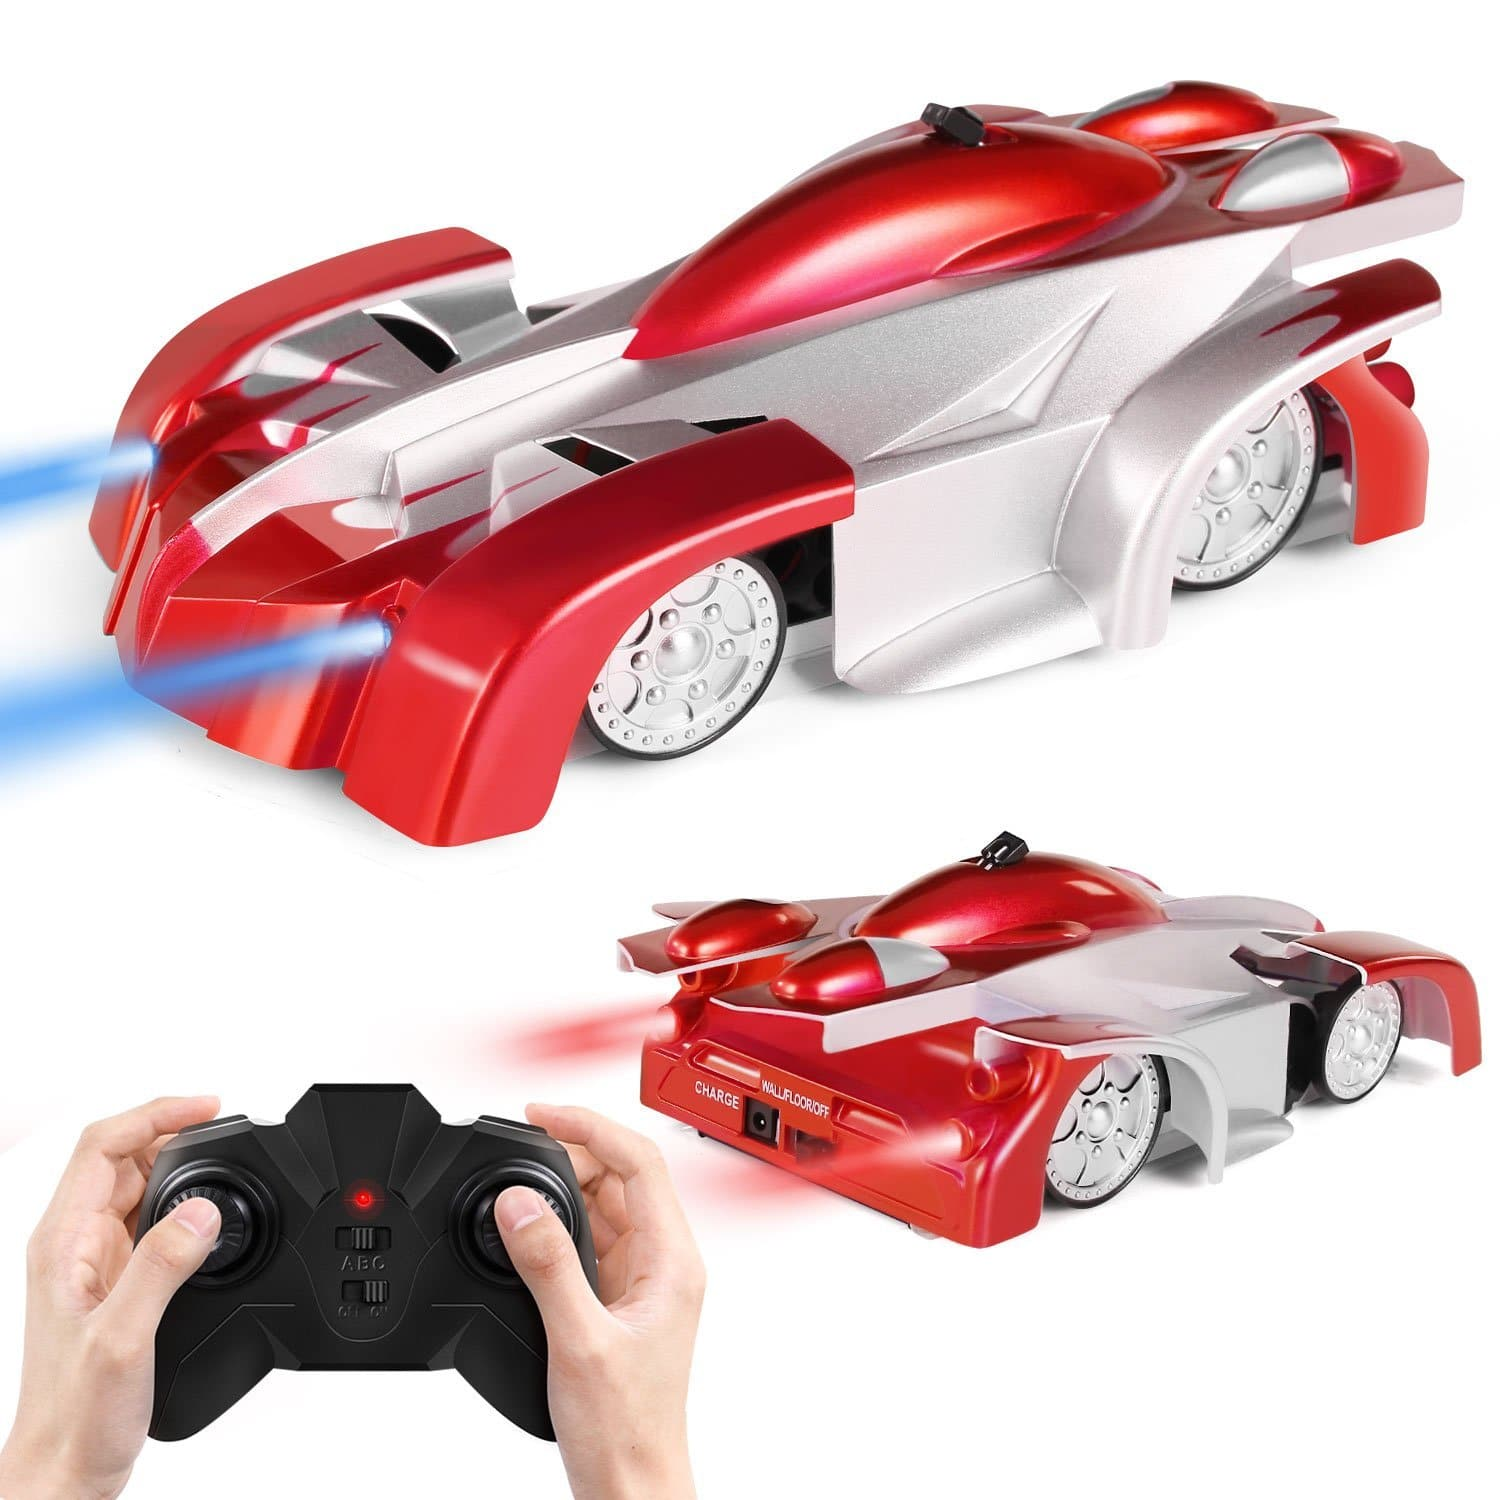 Rechargeable Remote Control Car Toy, Gravity Defying Wall climbing and 360° Rotating Stunt with Mini Control, LED Headlights and tailights $10.79